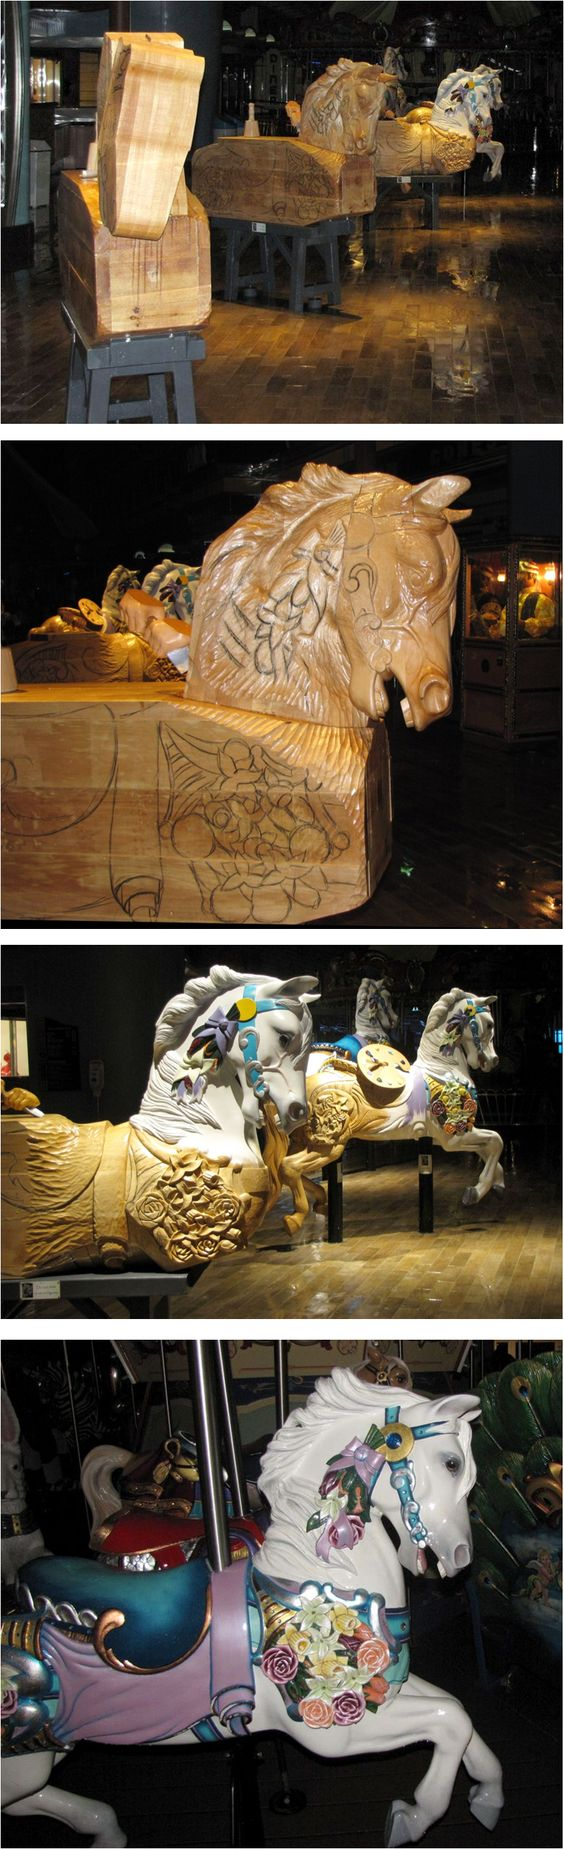 The hand-carved wooden animals in various stages of construction for use on the boardwalk carousel of the cruise ship Oasis of the Seas. It is the first carousel to ever operate at sea.: